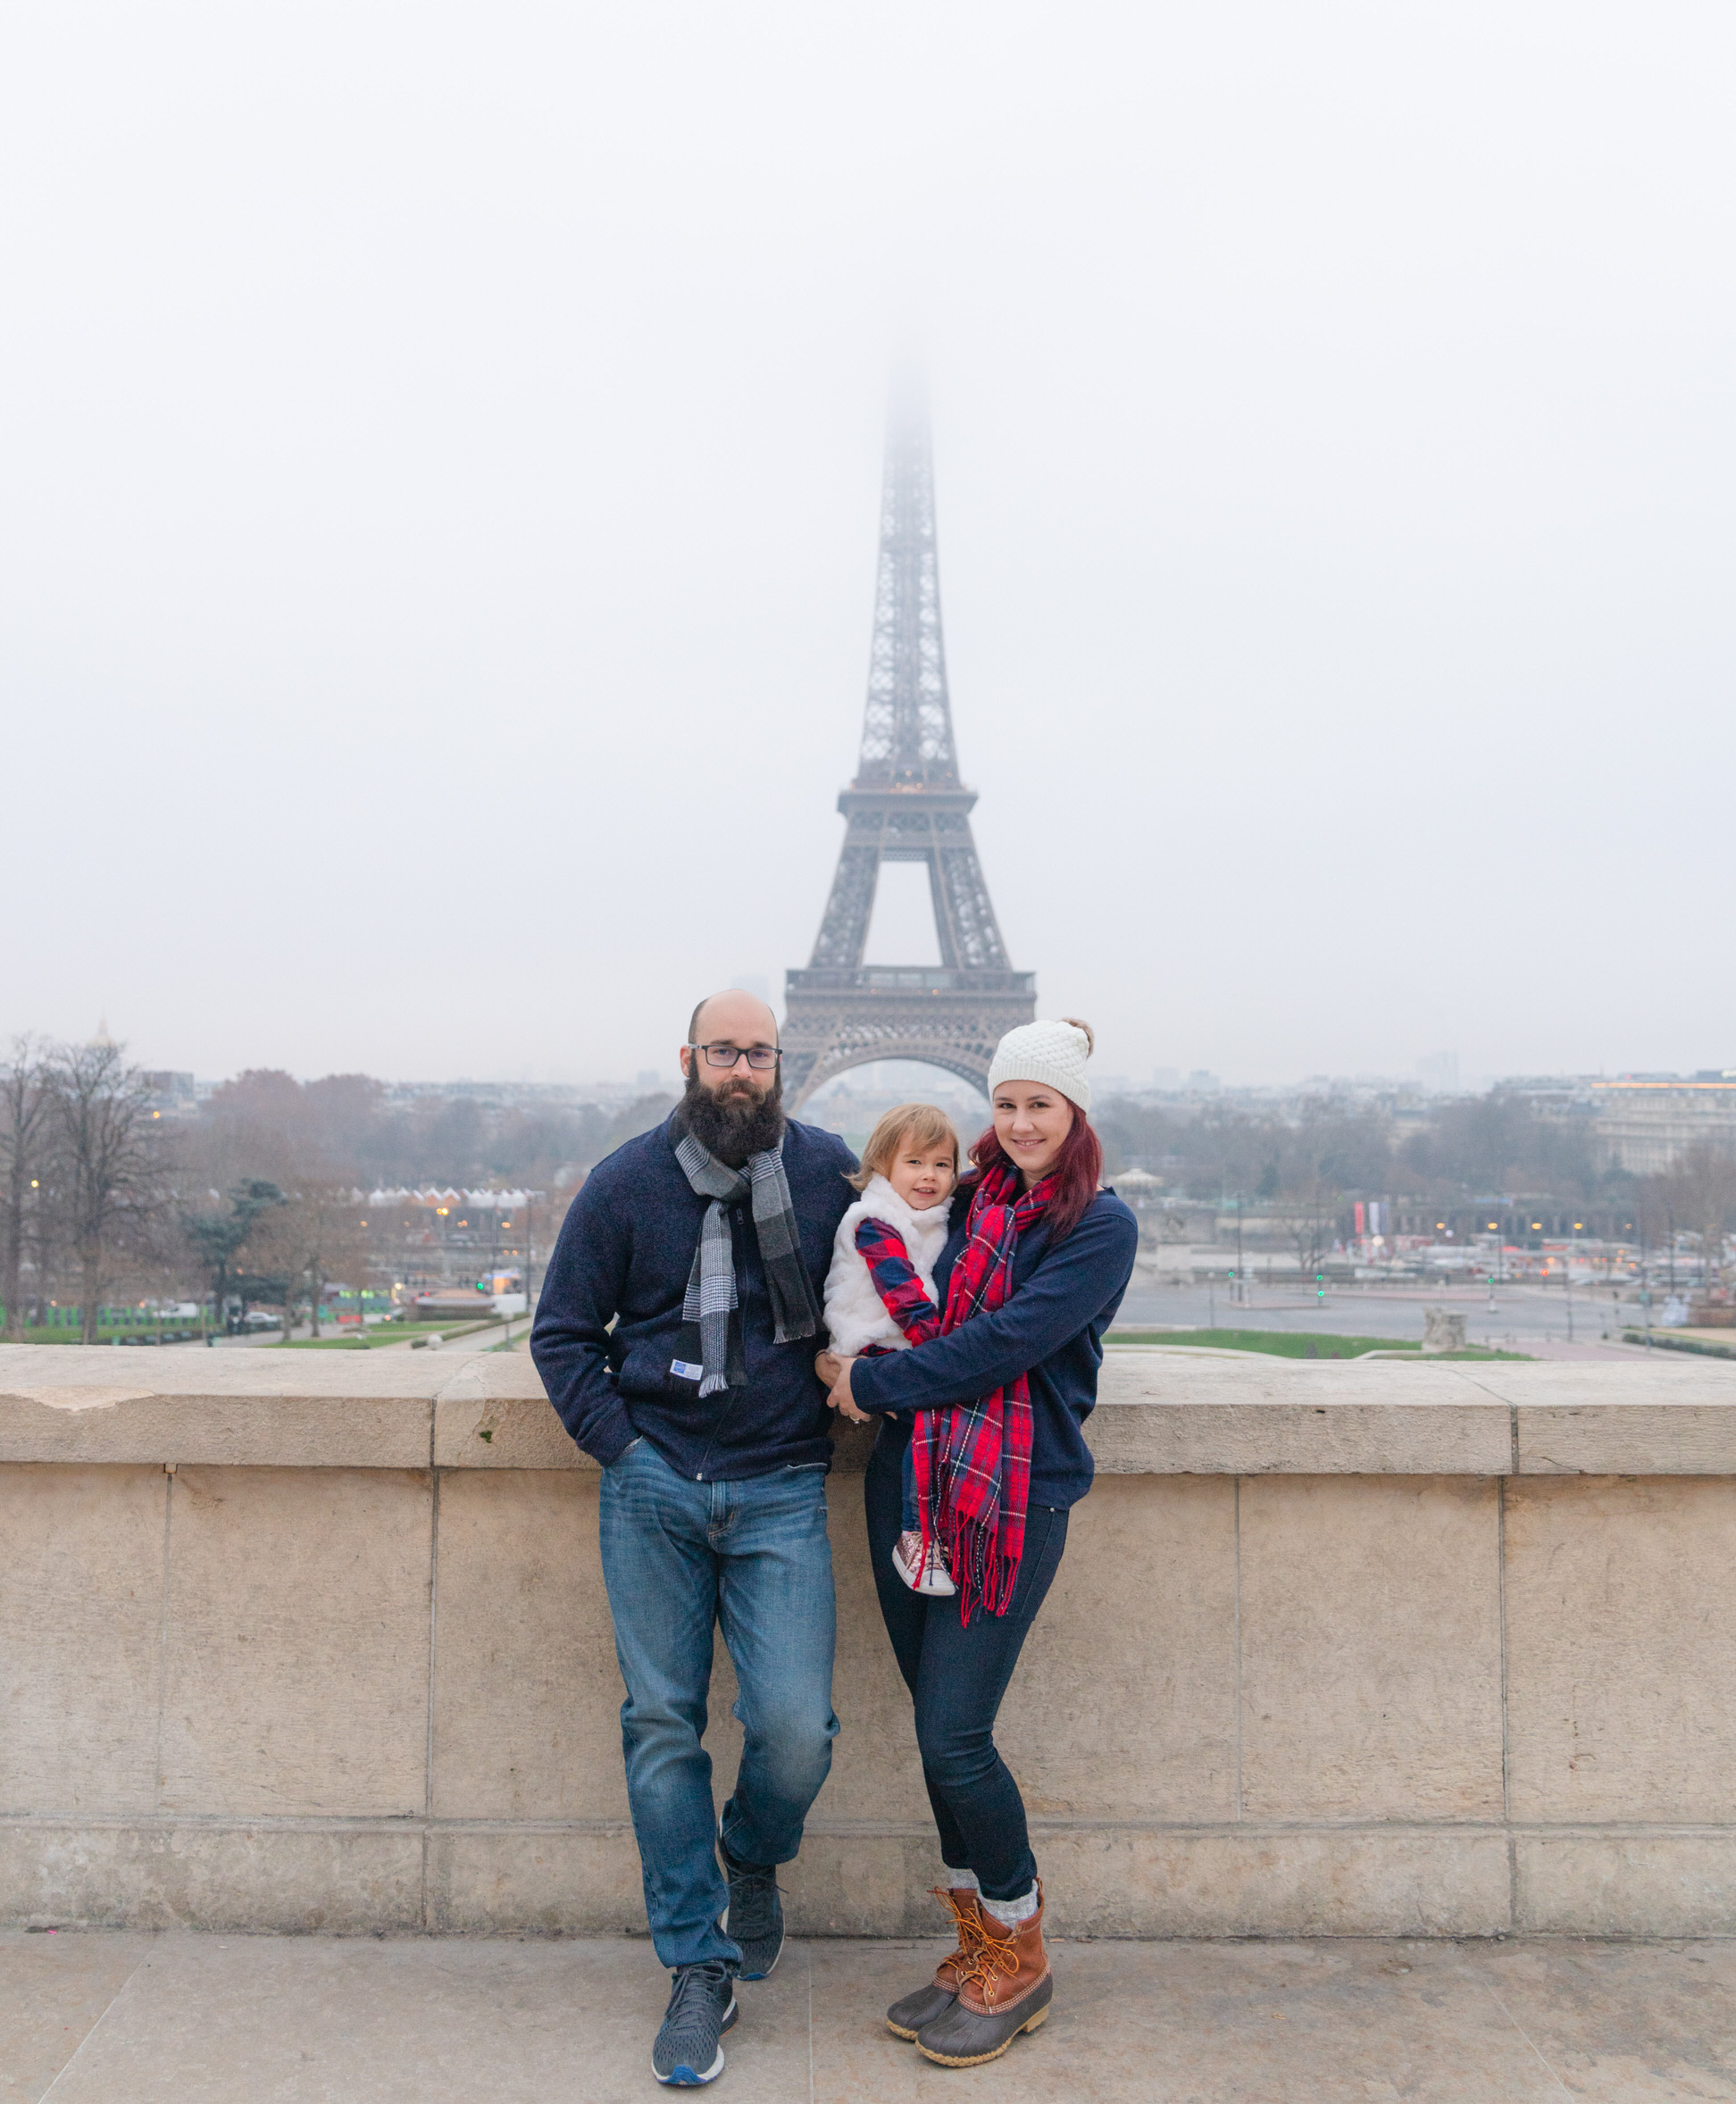 Wonderful family morning at the Eiffel Tower